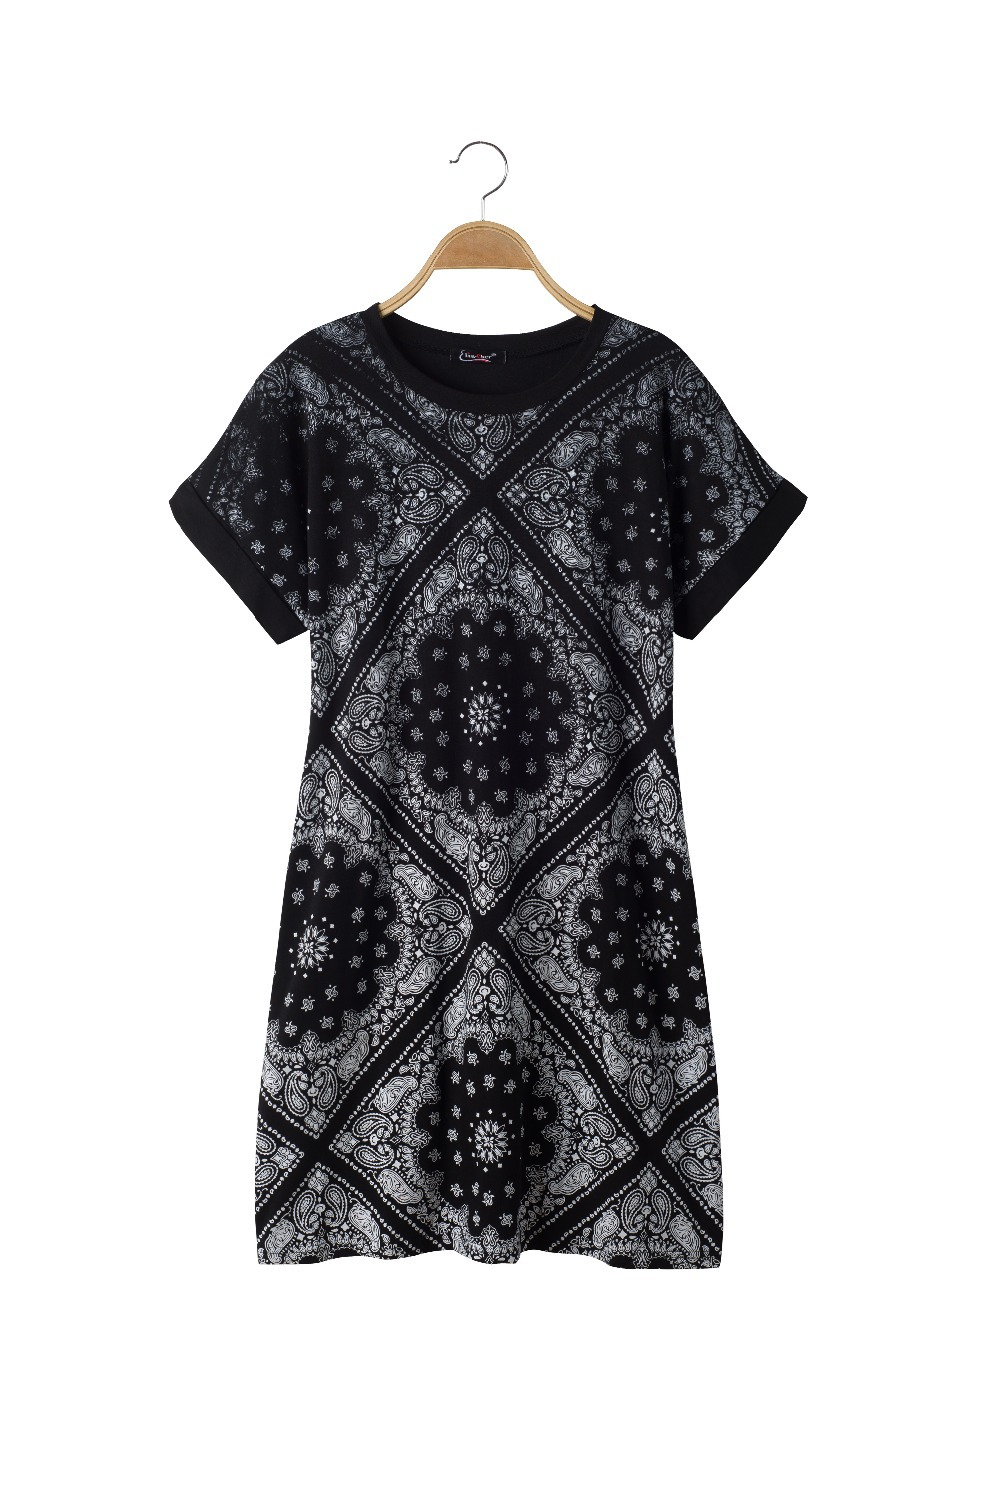 Find great deals on eBay for bandana print dress. Shop with confidence.